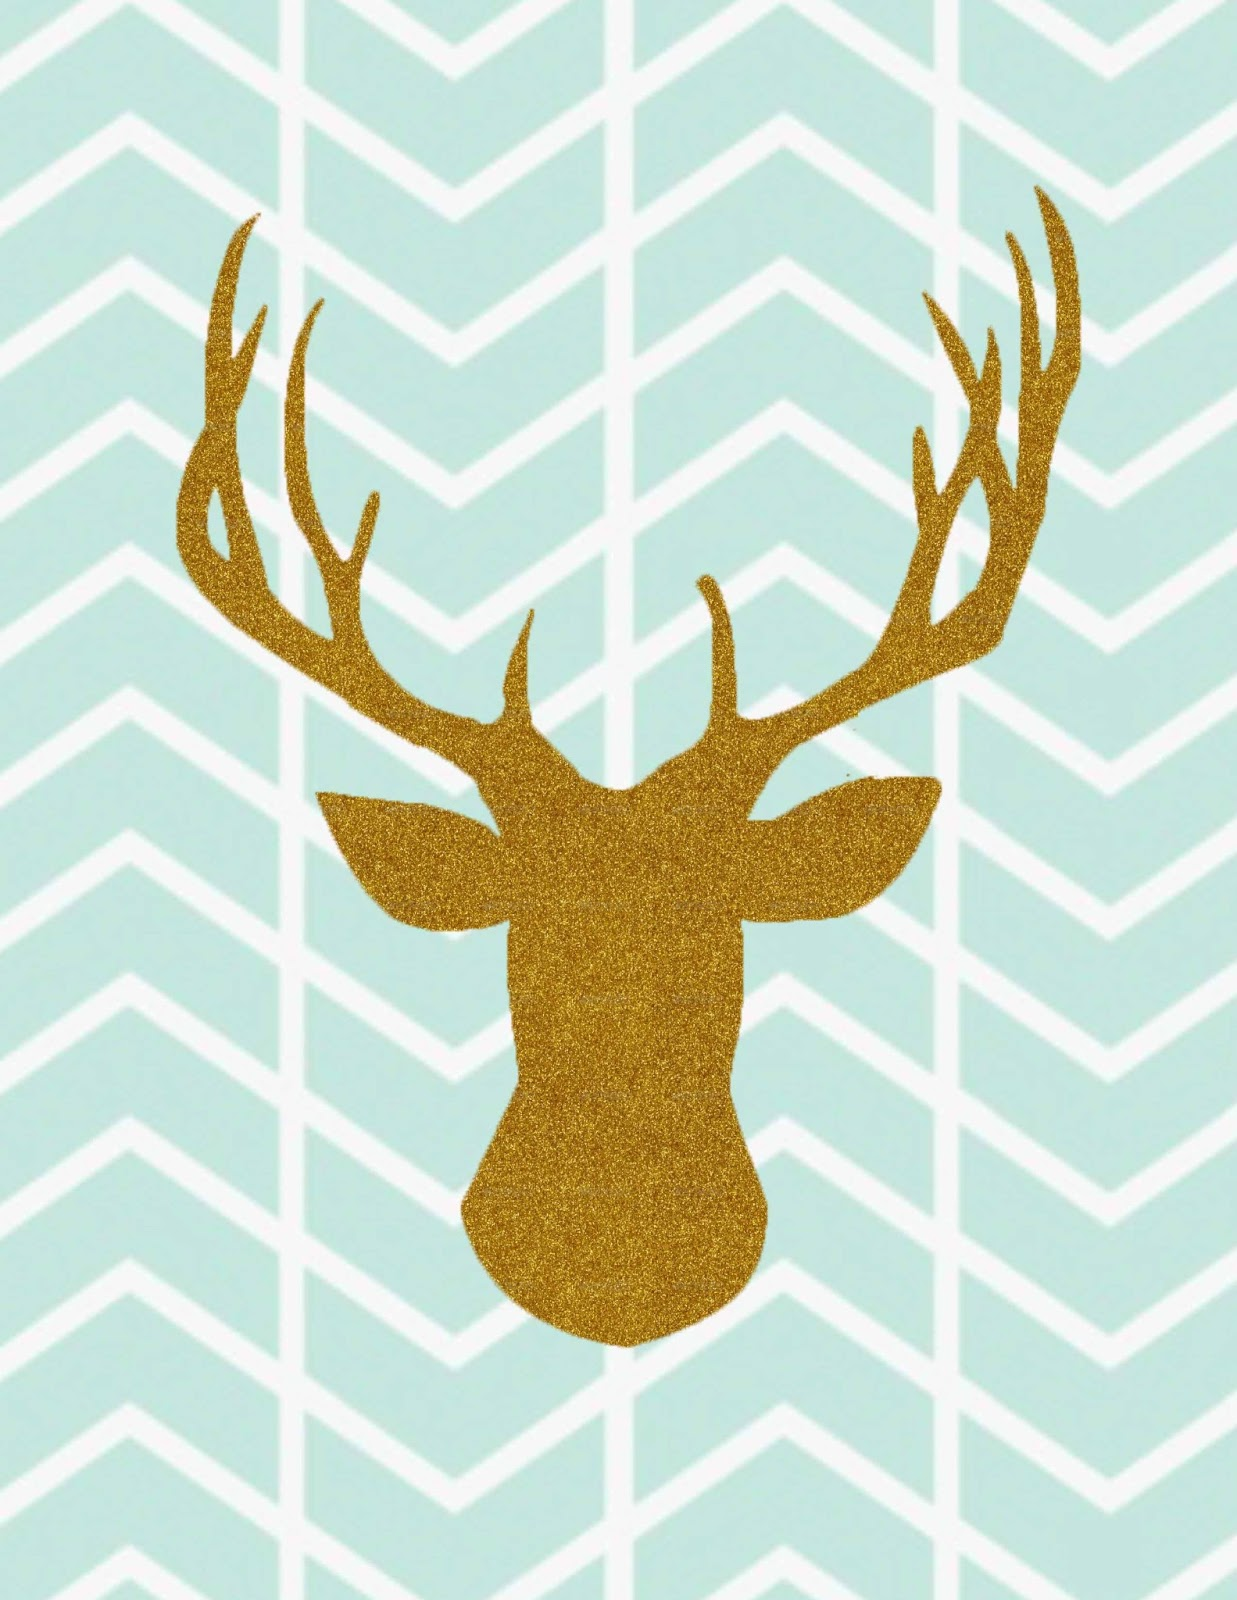 This is an image of Accomplished Printable Deer Head Silhouette